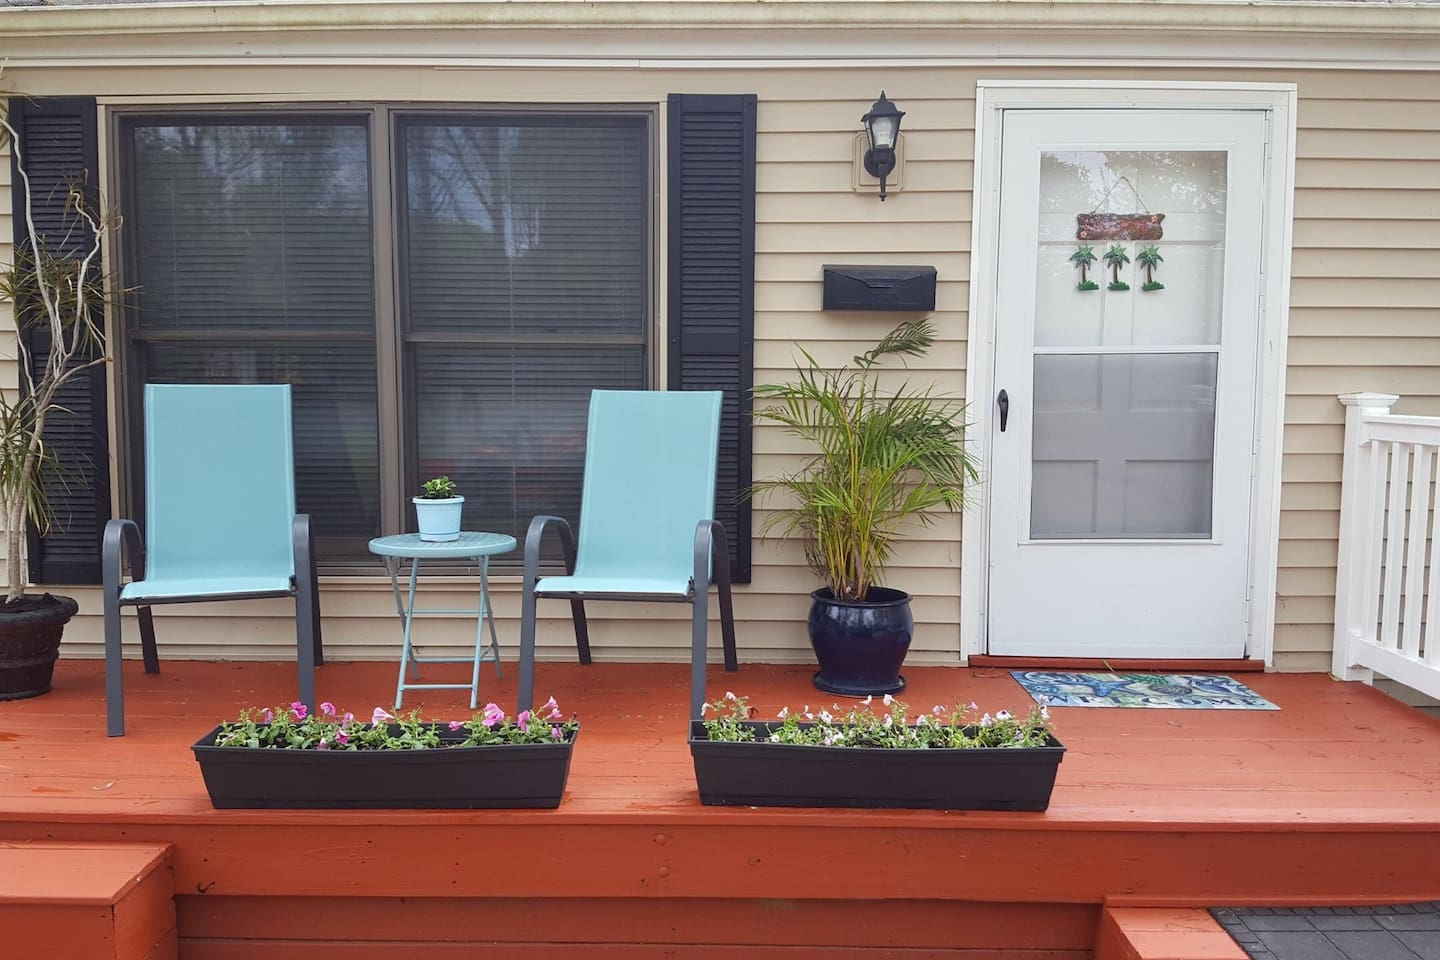 Newly renovated one bedroom guest house with private front porch and parking